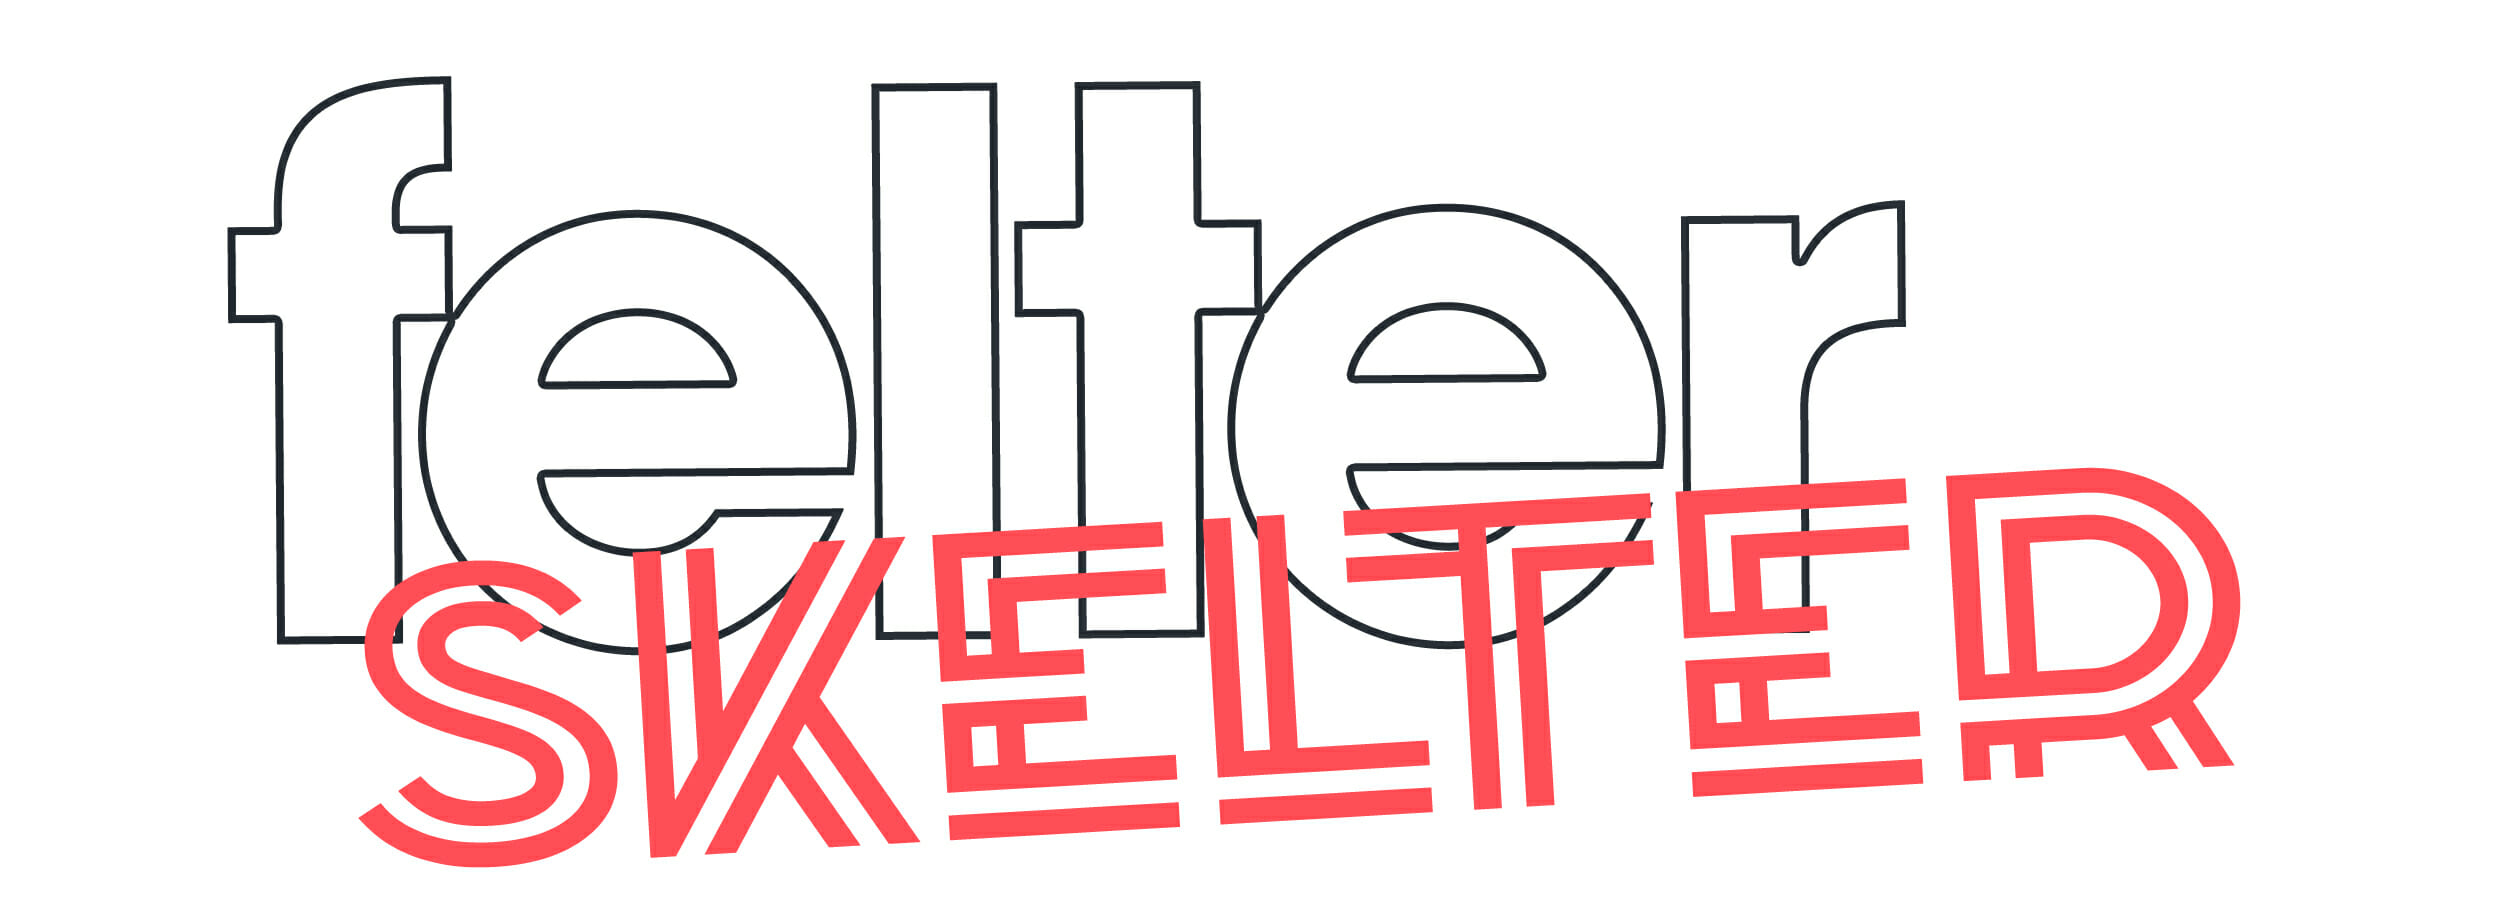 Felter Skelter - your essential needle felting column from Mr X Stitch!